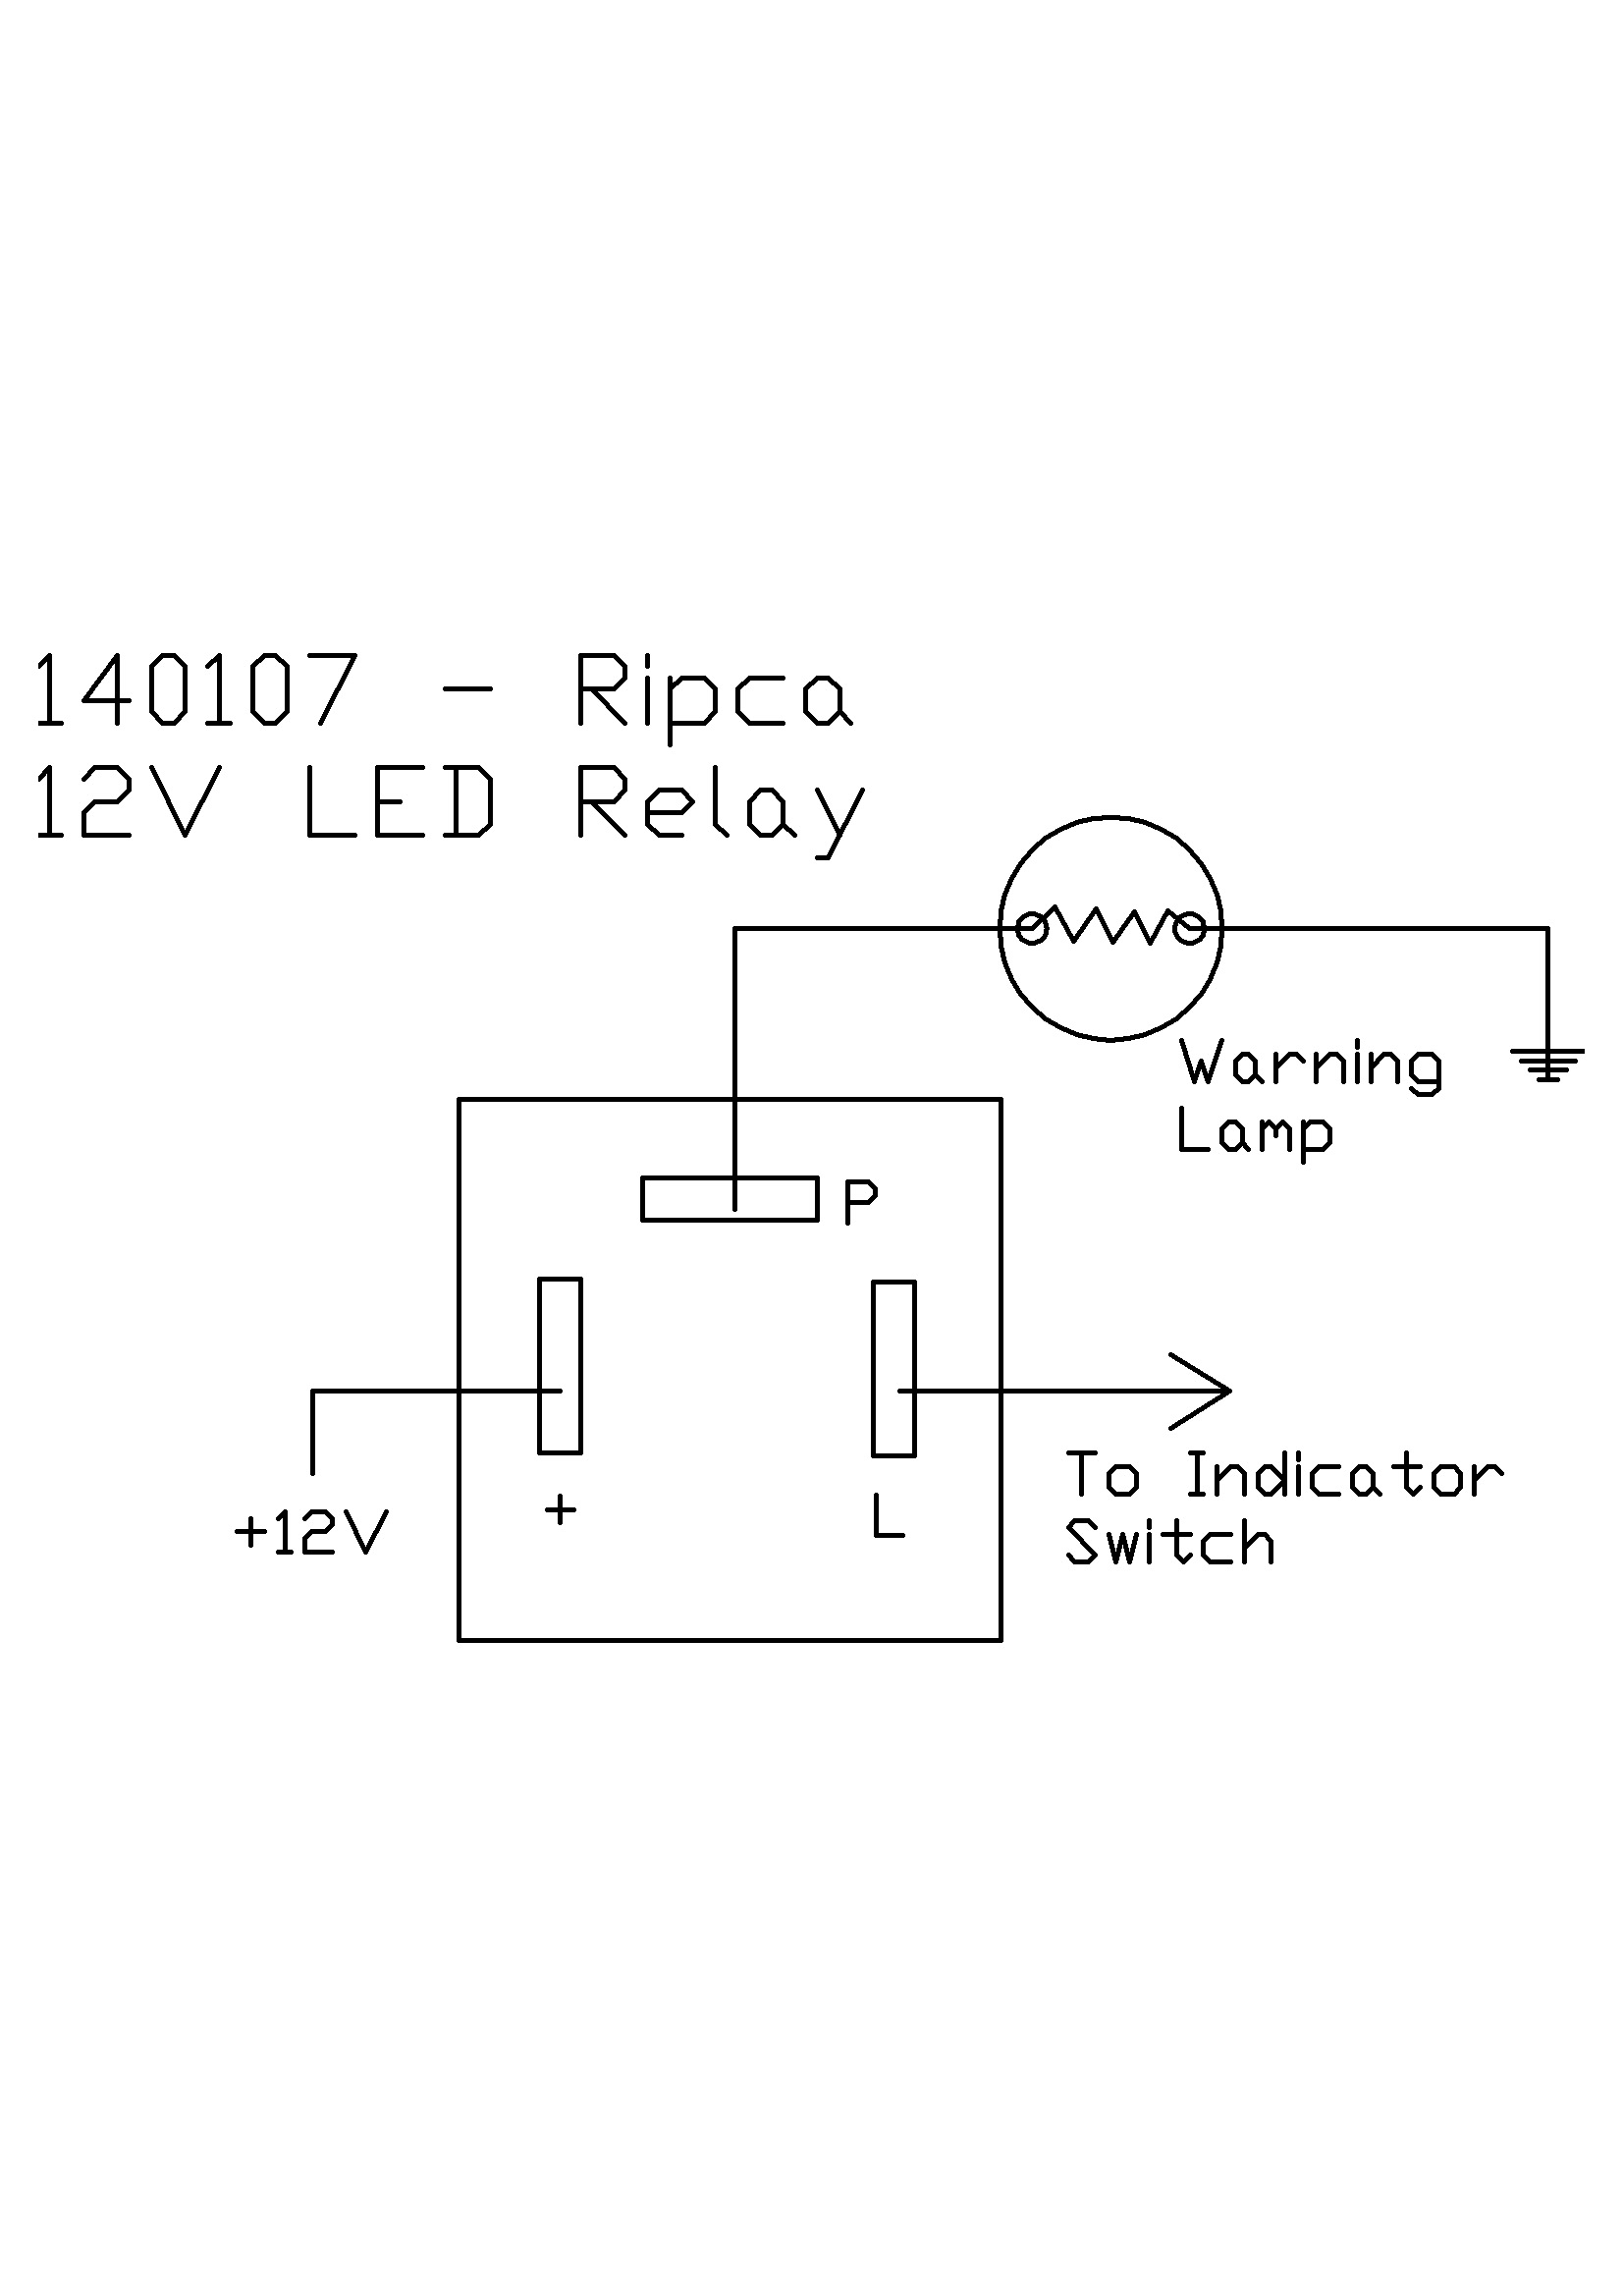 140107 ripca 12 volt led flasher unit led flasher relay wiring diagram at edmiracle.co